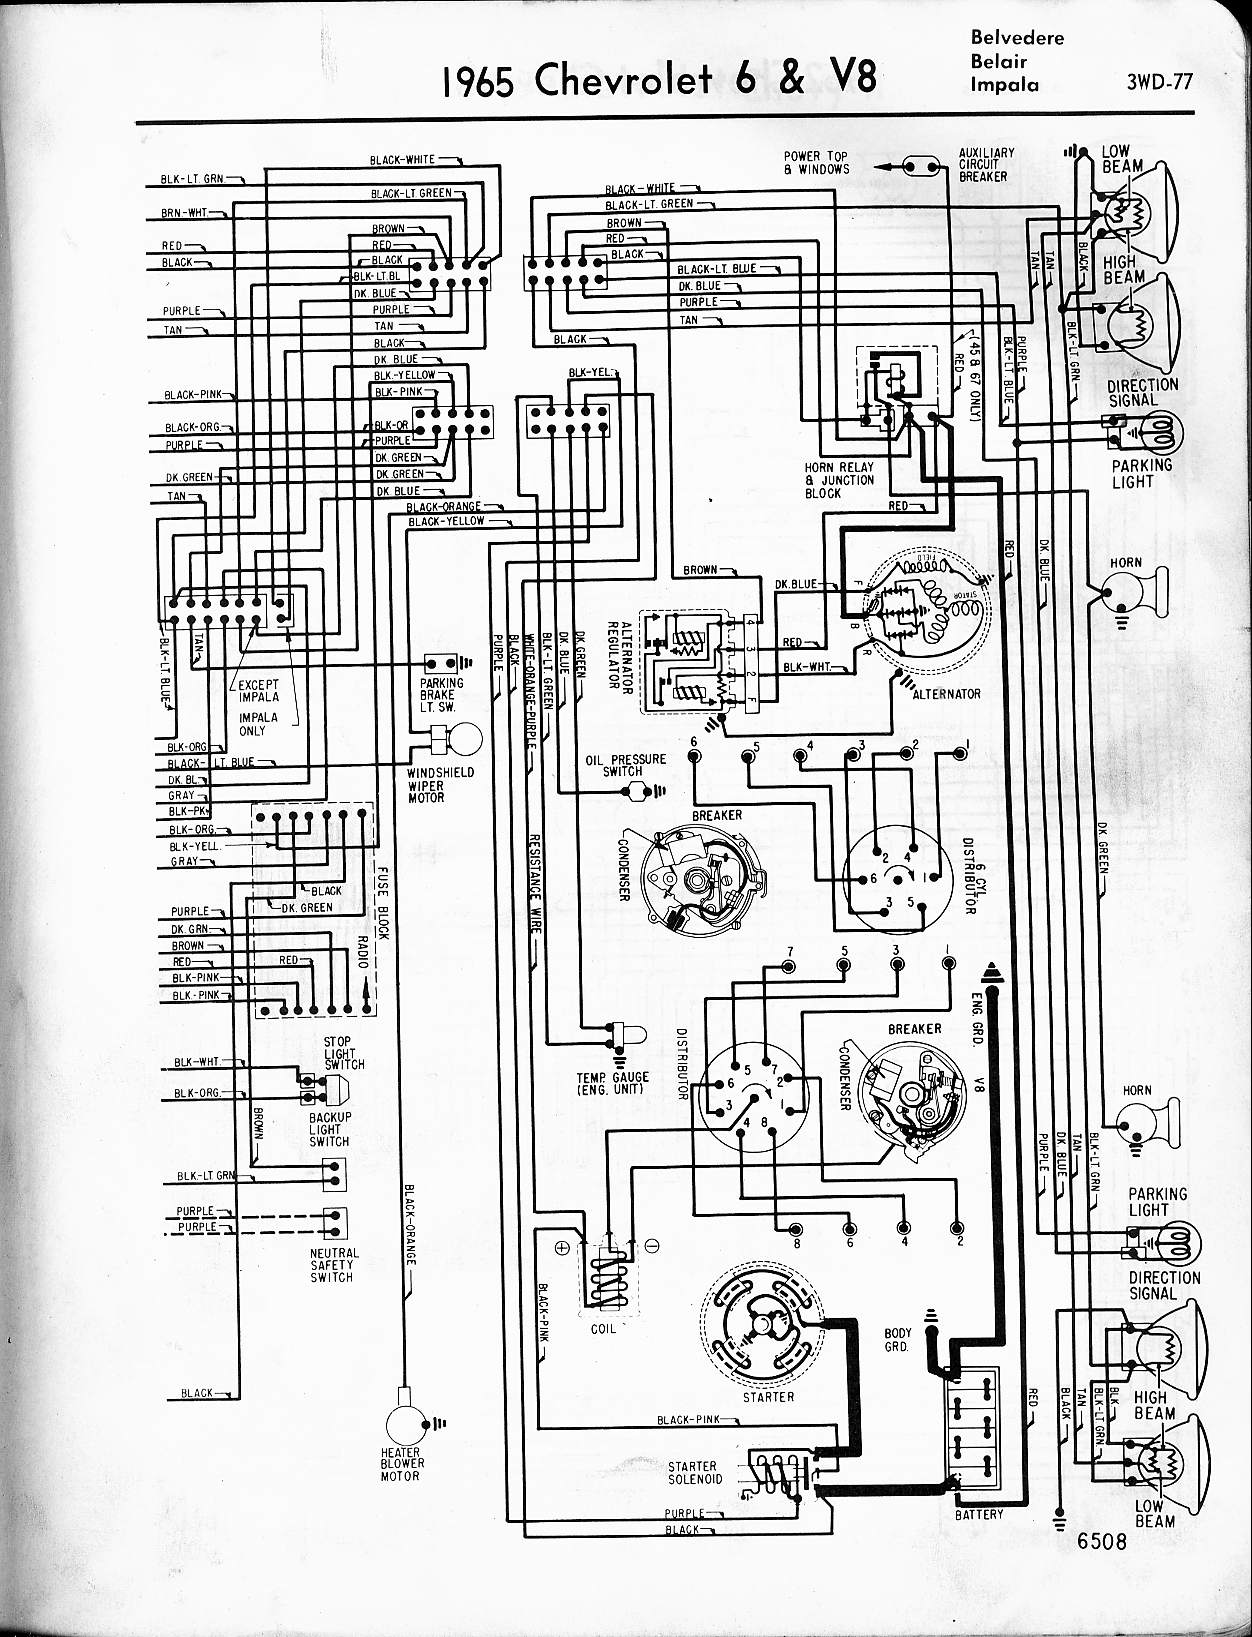 MWireChev65_3WD 077 1964 chevy truck wiring diagram wiring diagram all data